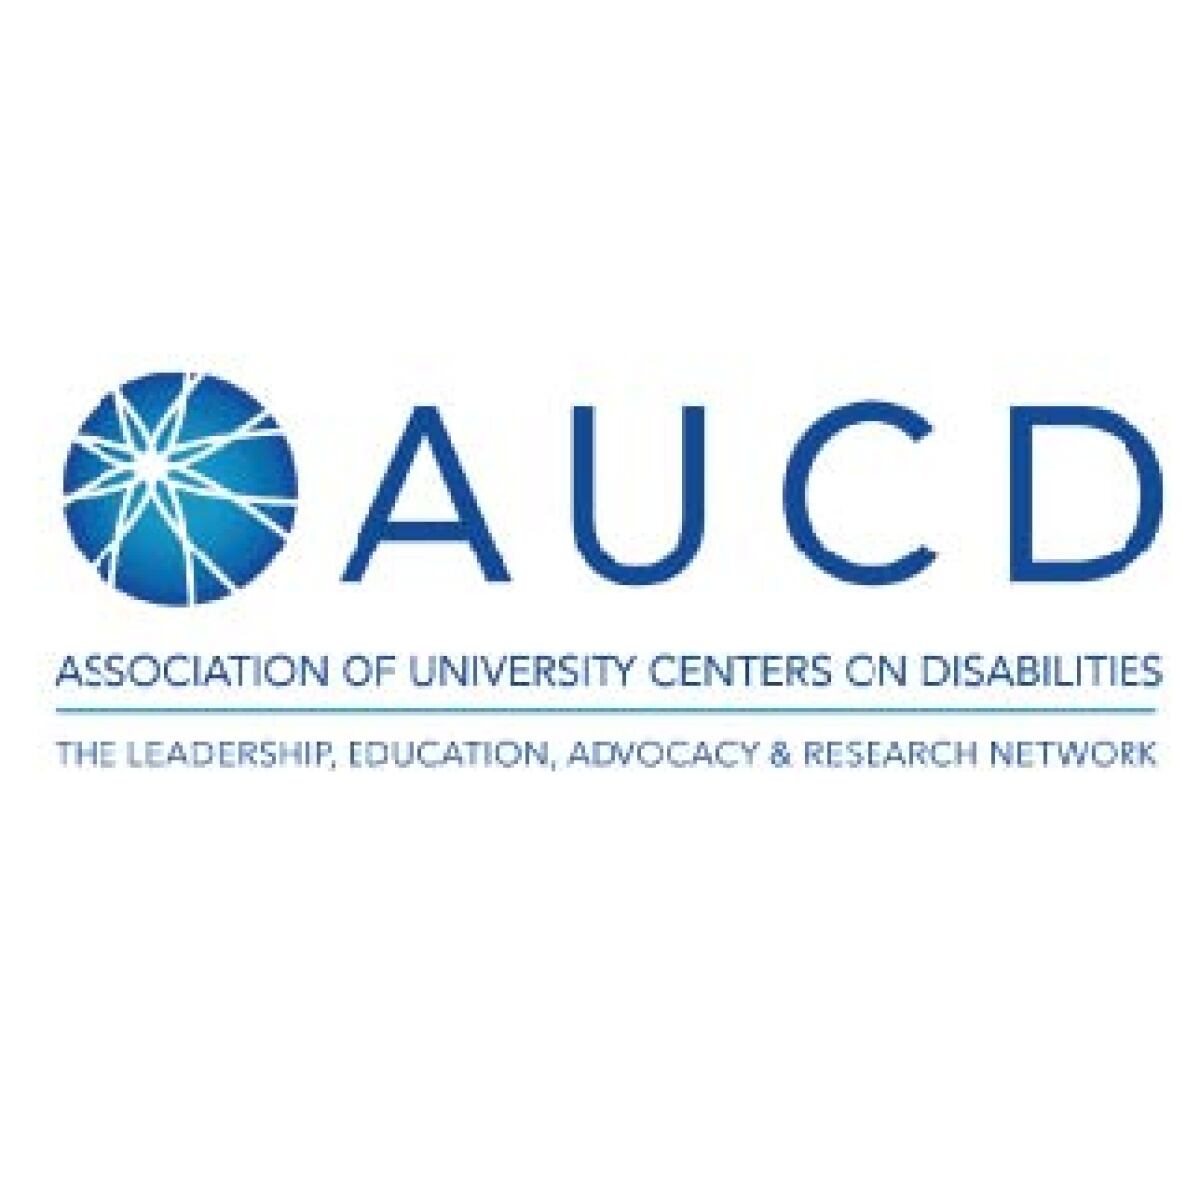 Association of University Centers on Disabilities (AUCD)